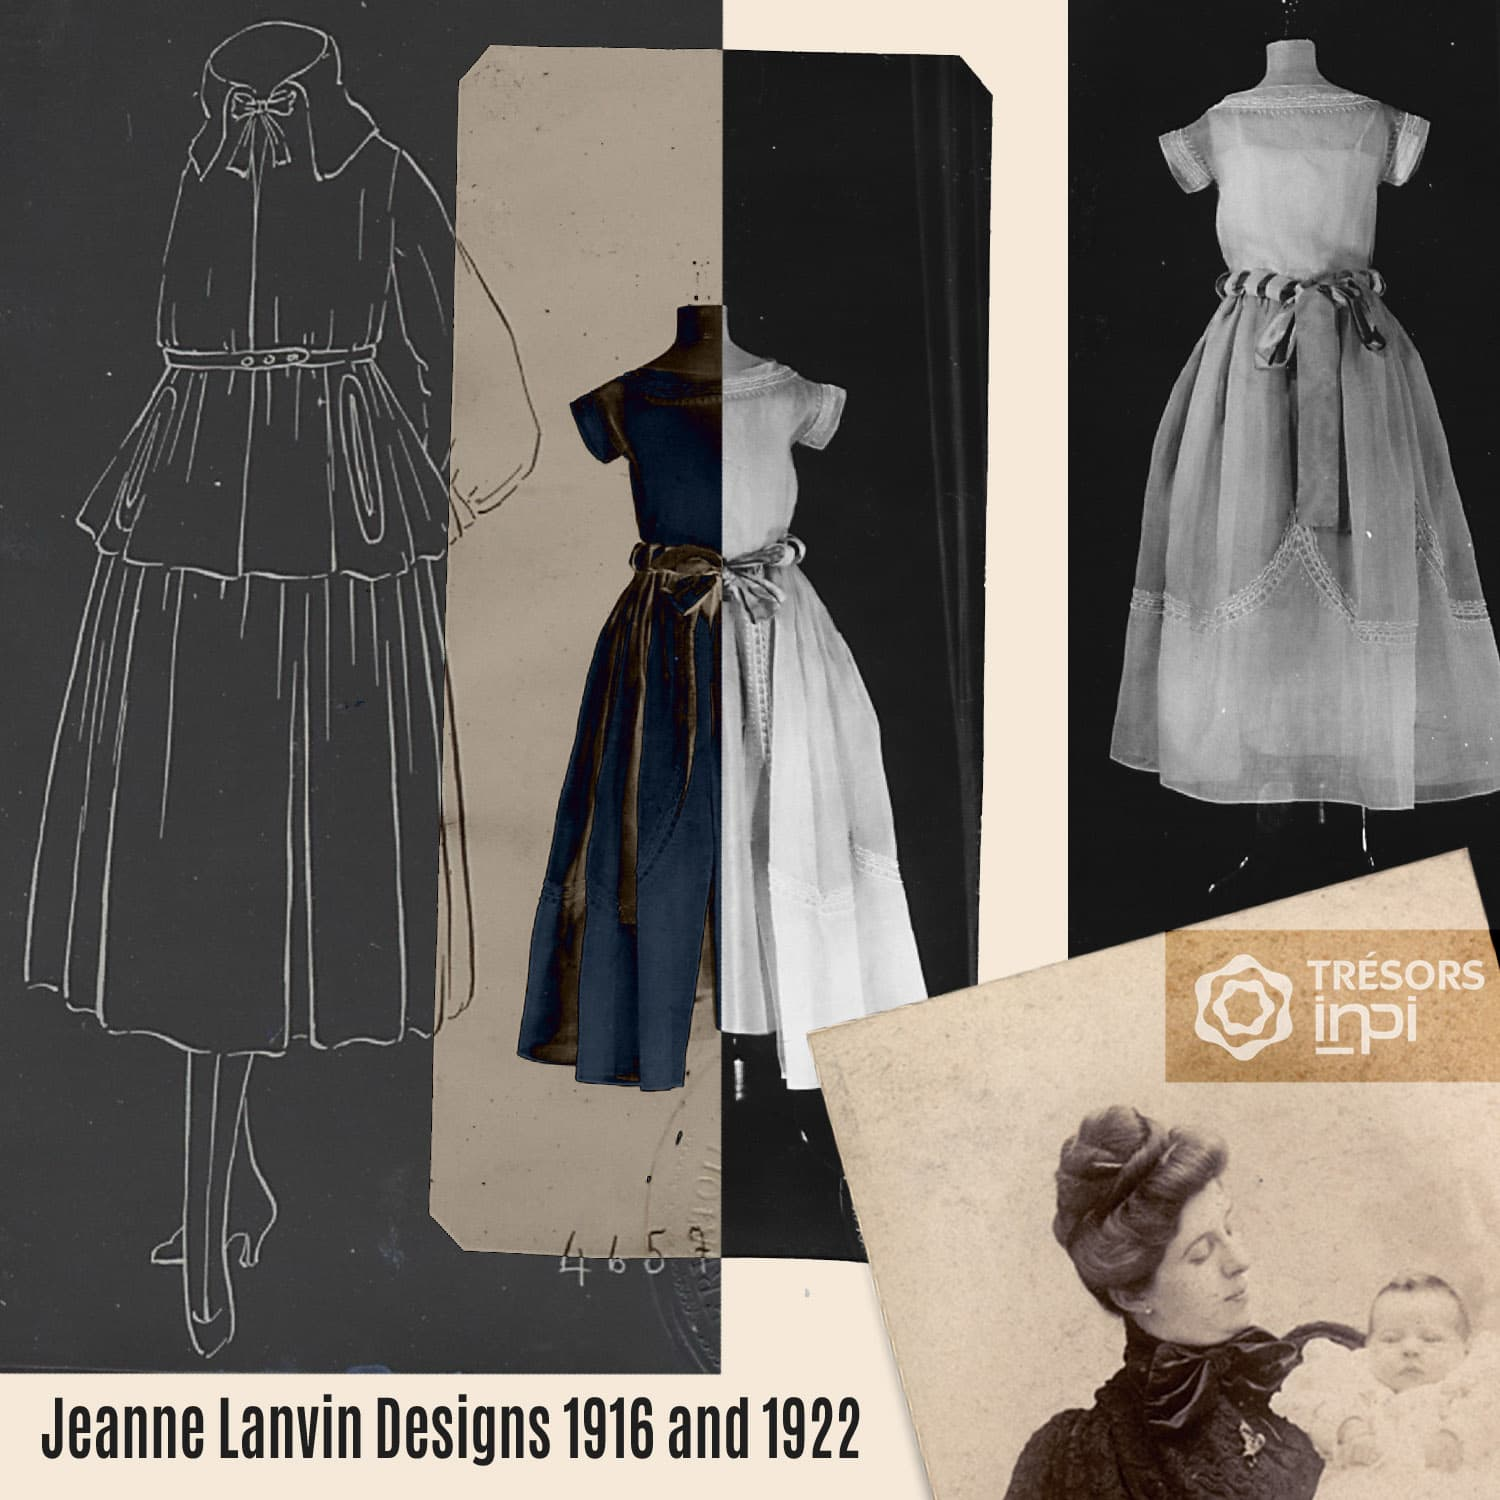 Jeanne Lanvin 1916-1922 skirt inventions - INPI archives